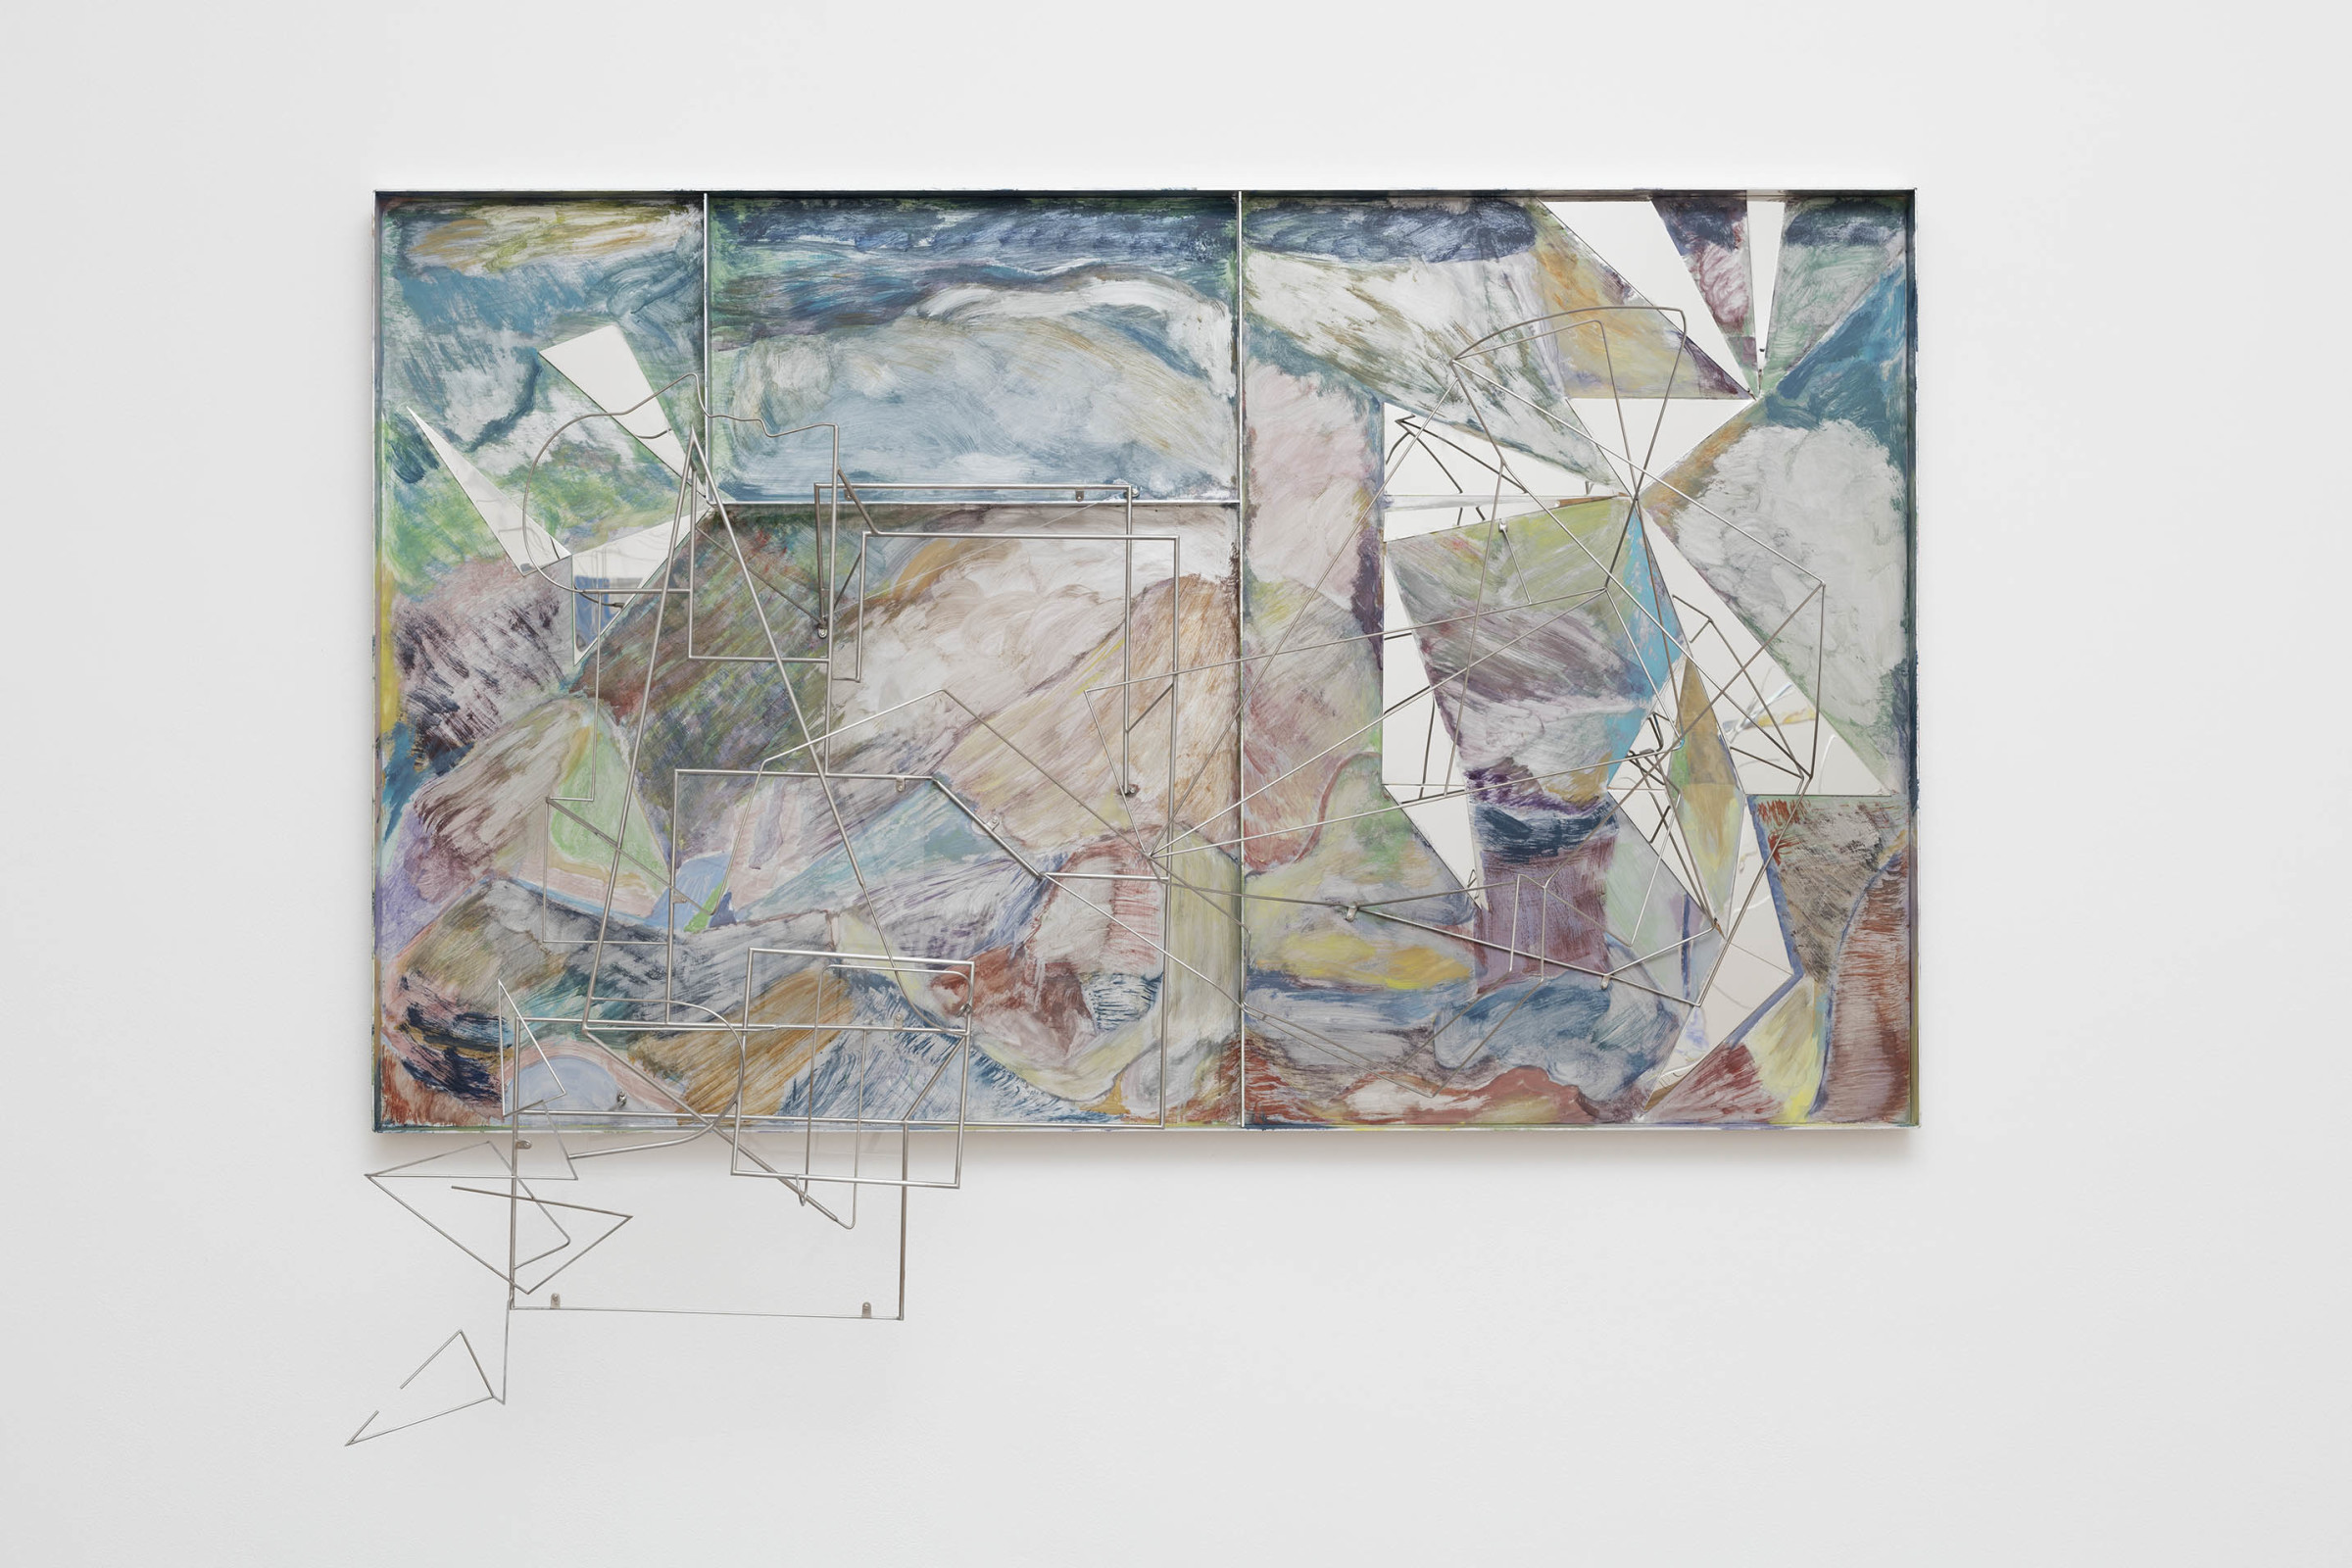 <span class=&#34;link fancybox-details-link&#34;><a href=&#34;/exhibitions/7/works/artworks318/&#34;>View Detail Page</a></span><div class=&#34;artist&#34;><strong>Sara Barker</strong></div><p>born 1980</p><div class=&#34;title&#34;><em>Hour-watching silver and exact, water is in water, within within within</em>, 2017</div><div class=&#34;medium&#34;>Aluminium sheet, mirrored steel, stainless steel rod, automotive paint Panel</div><div class=&#34;dimensions&#34;>106 x 174 x 42cm</div>